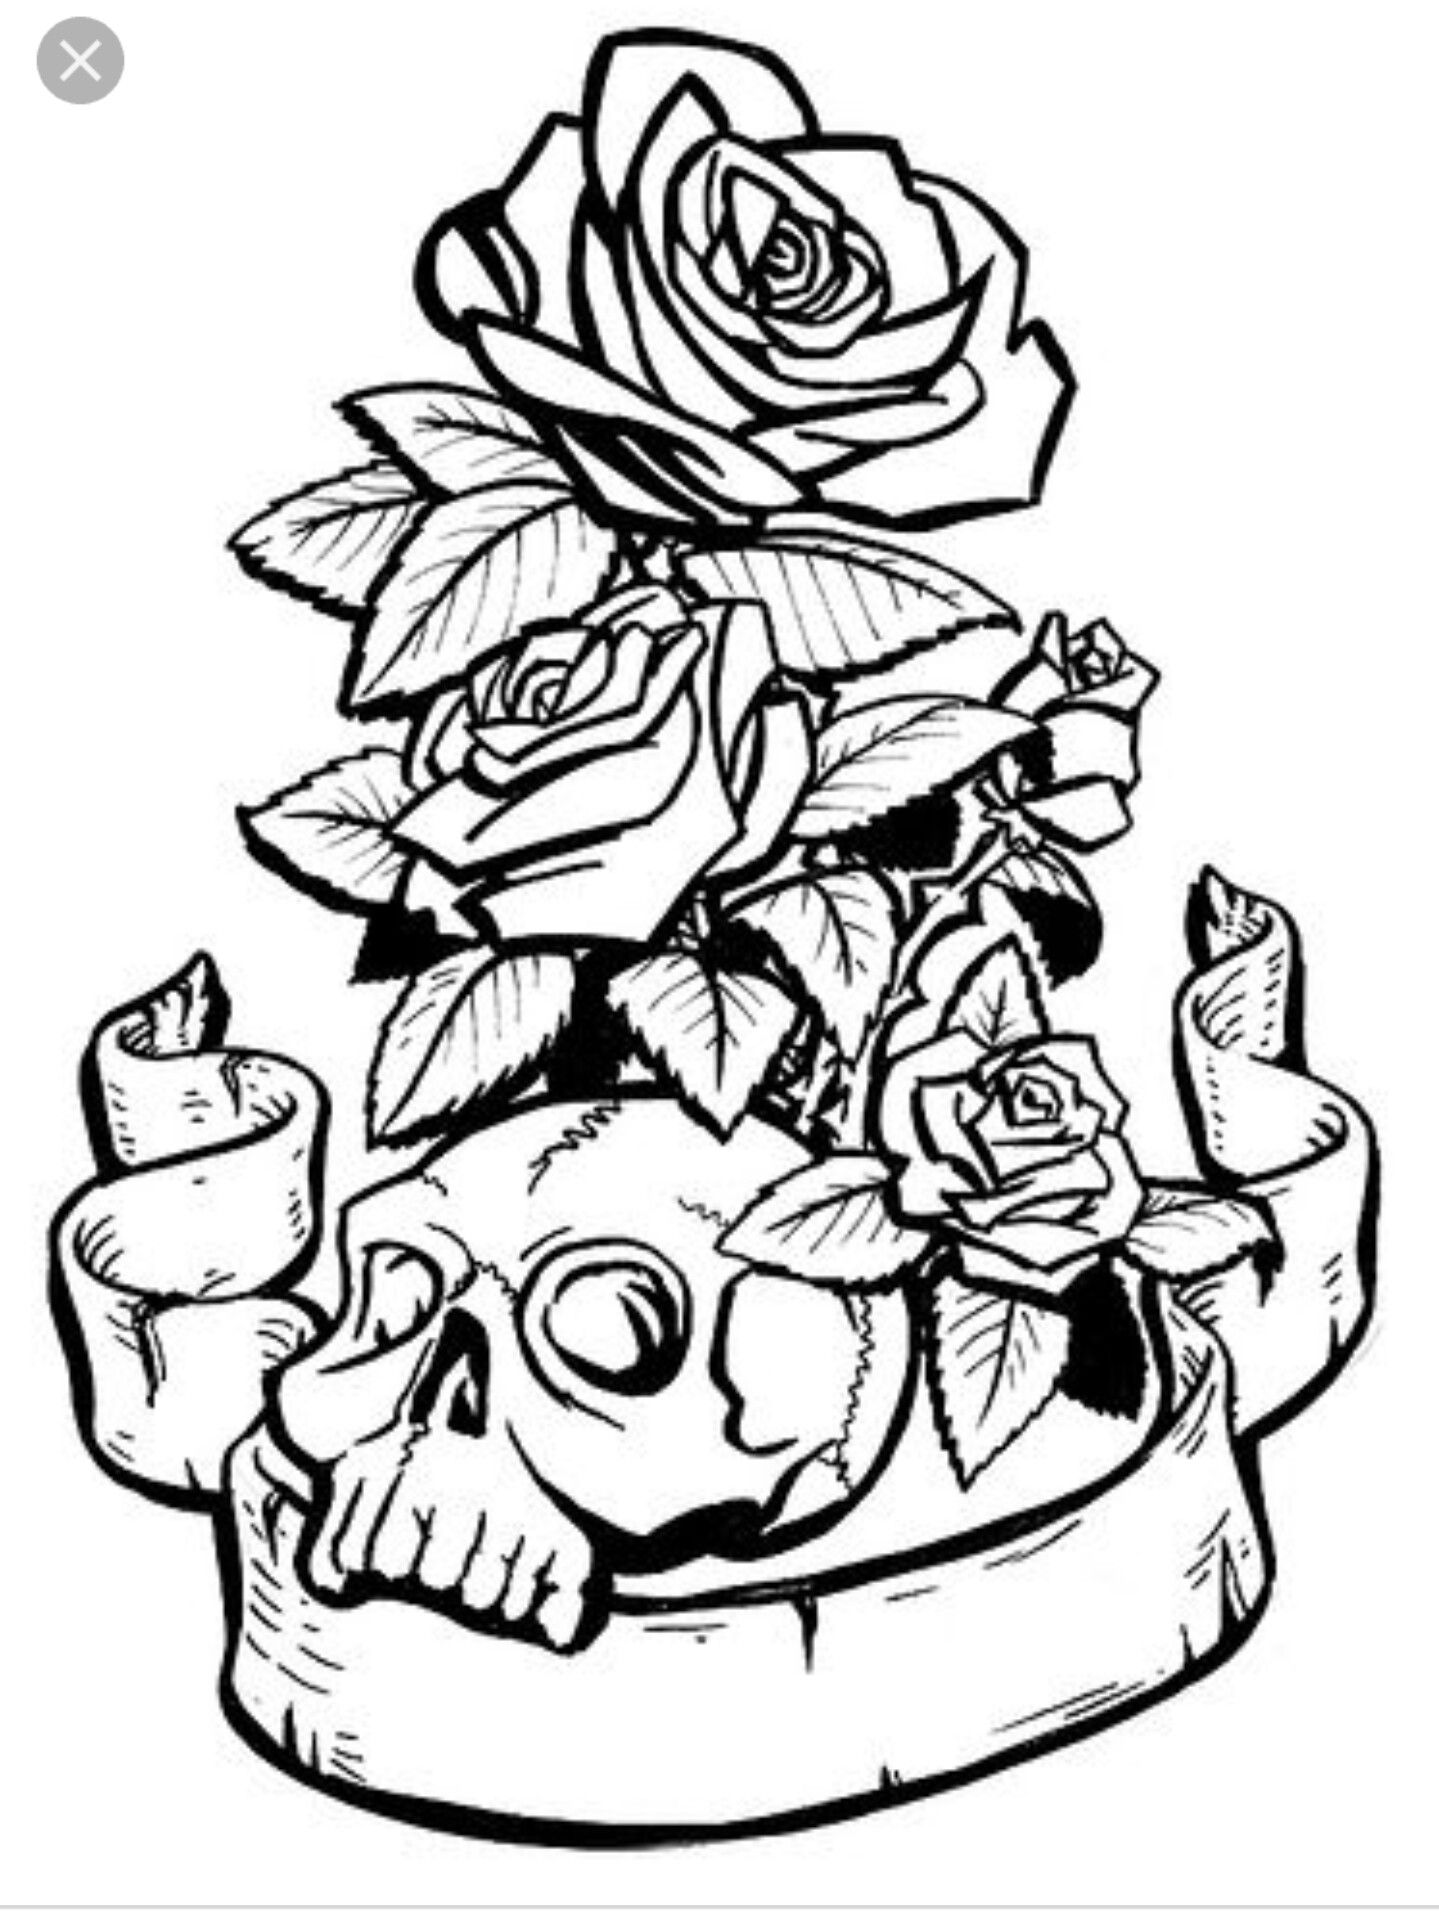 Pin By Amanda Witt On Skulls Skull Coloring Pages Coloring Pages Free Coloring Pages